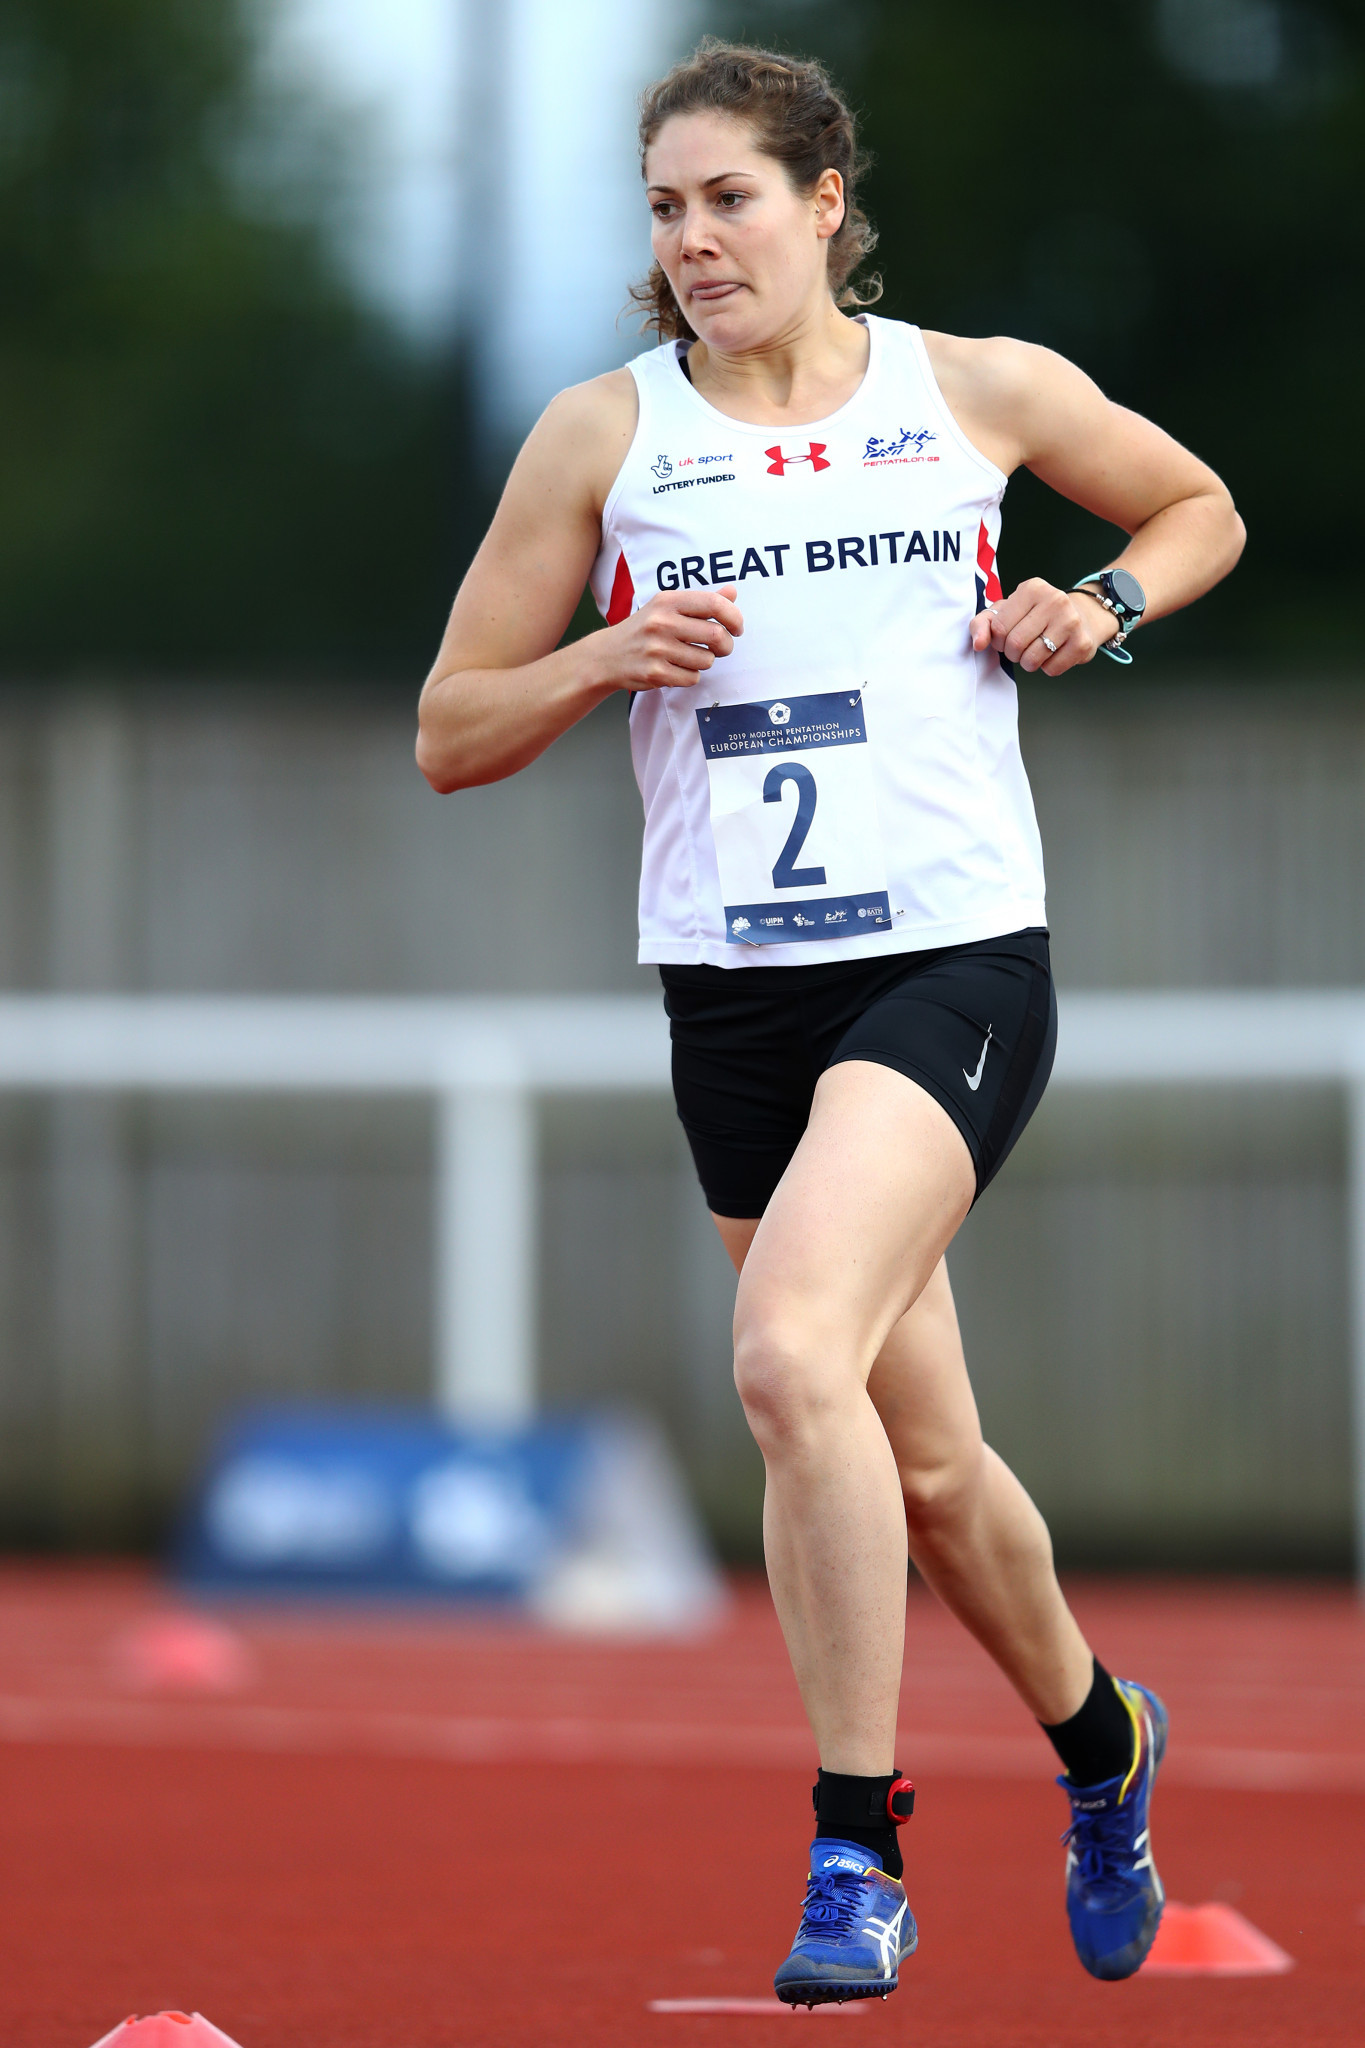 French and Schleu lead way in individual qualification at UIPM Pentathlon World Championships